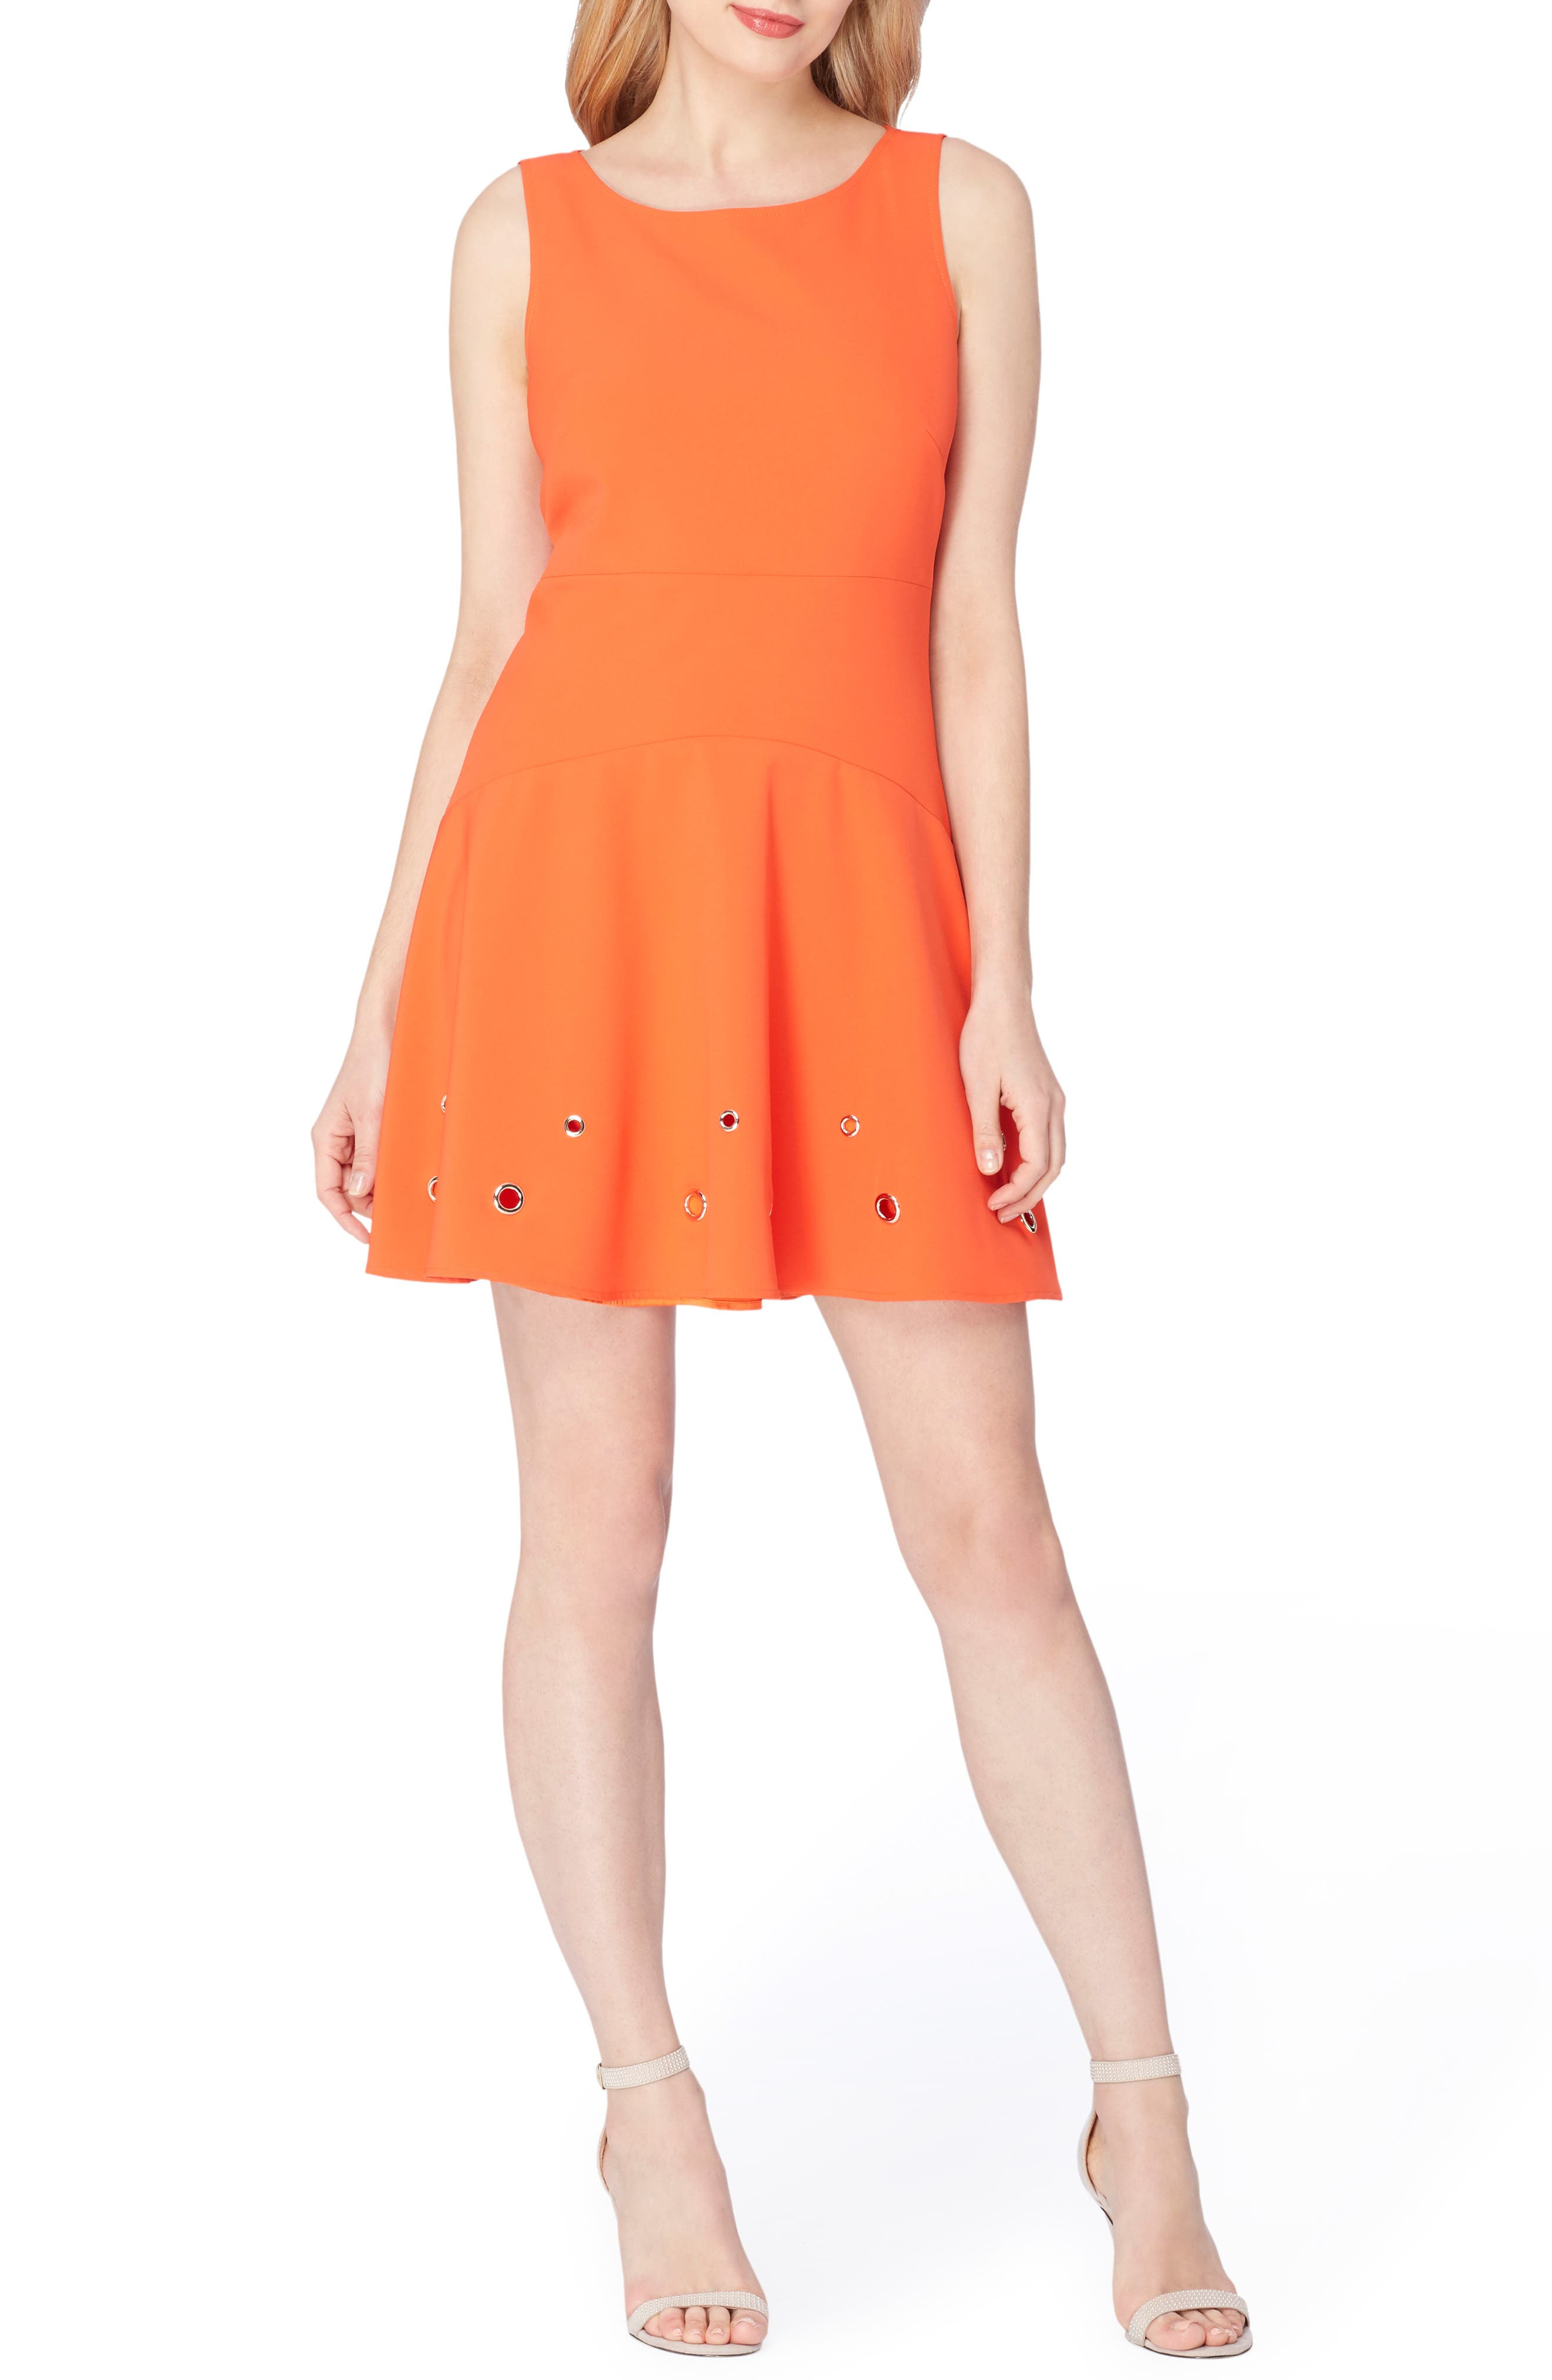 Grommet Stretch Dress,                         Main,                         color, Tangelo